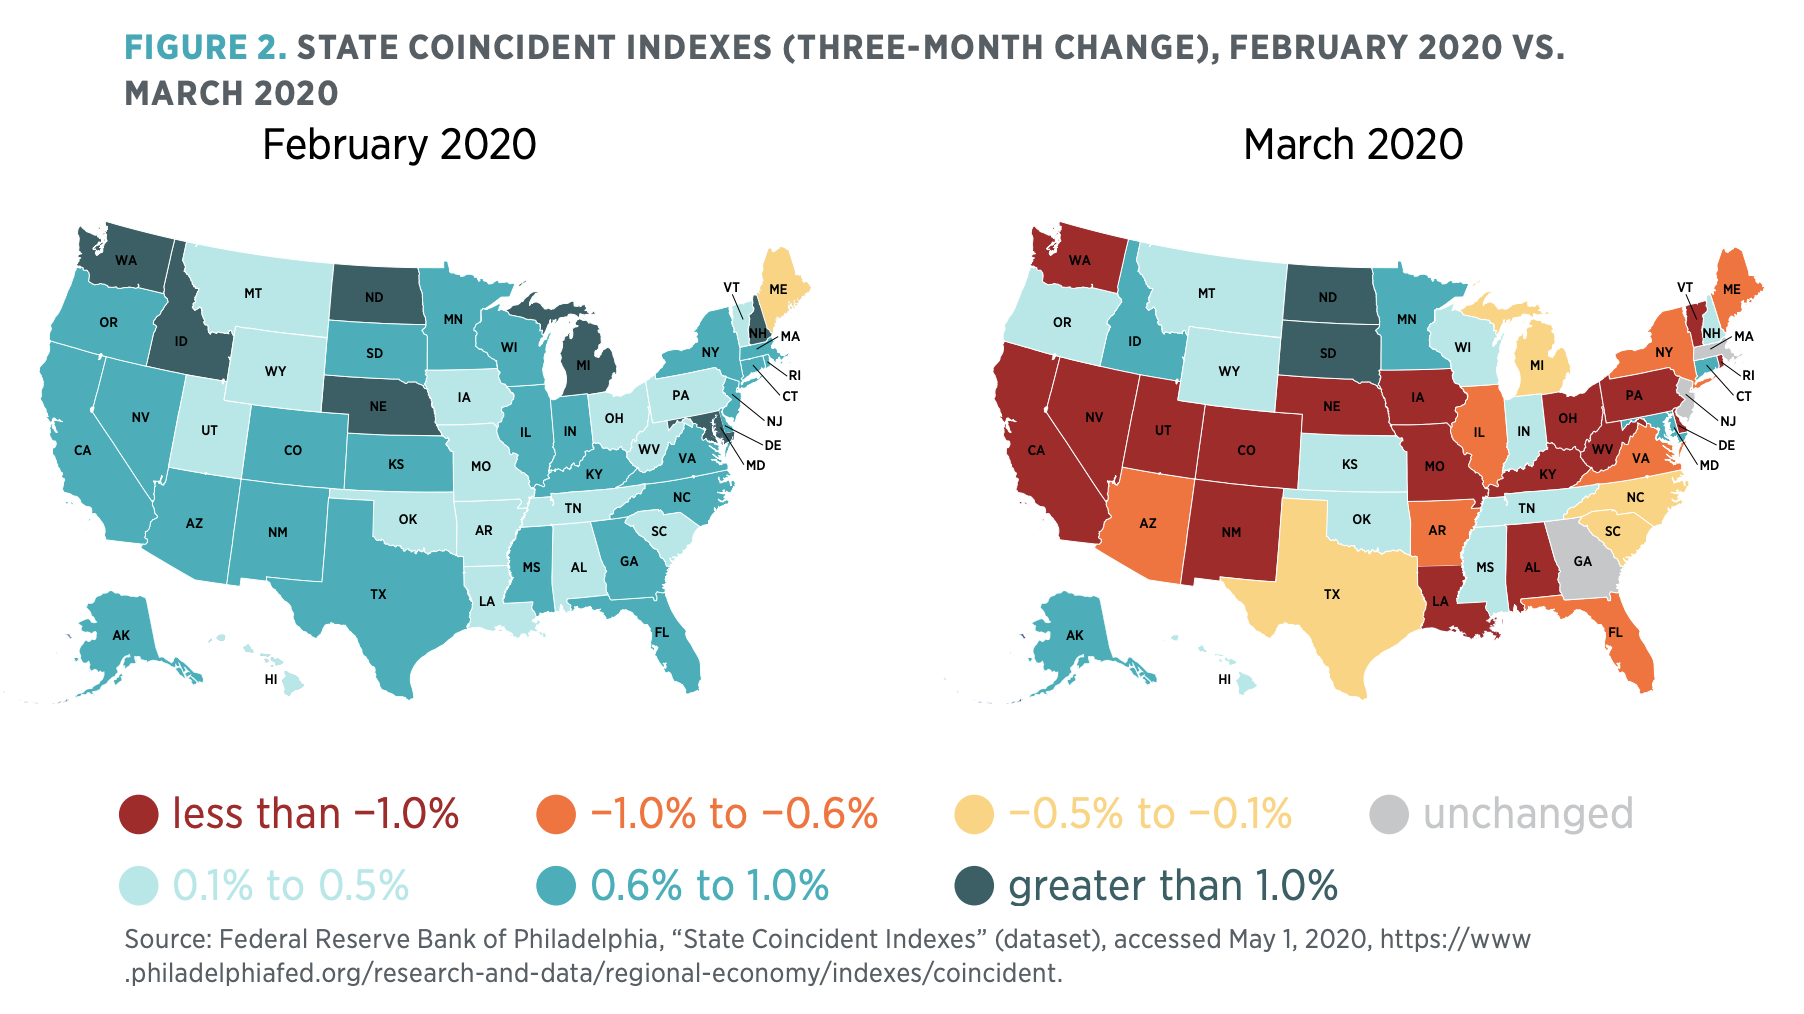 Figure 2. State Coincident Indexes (Three-Month Change), February 2020 vs. March 2020